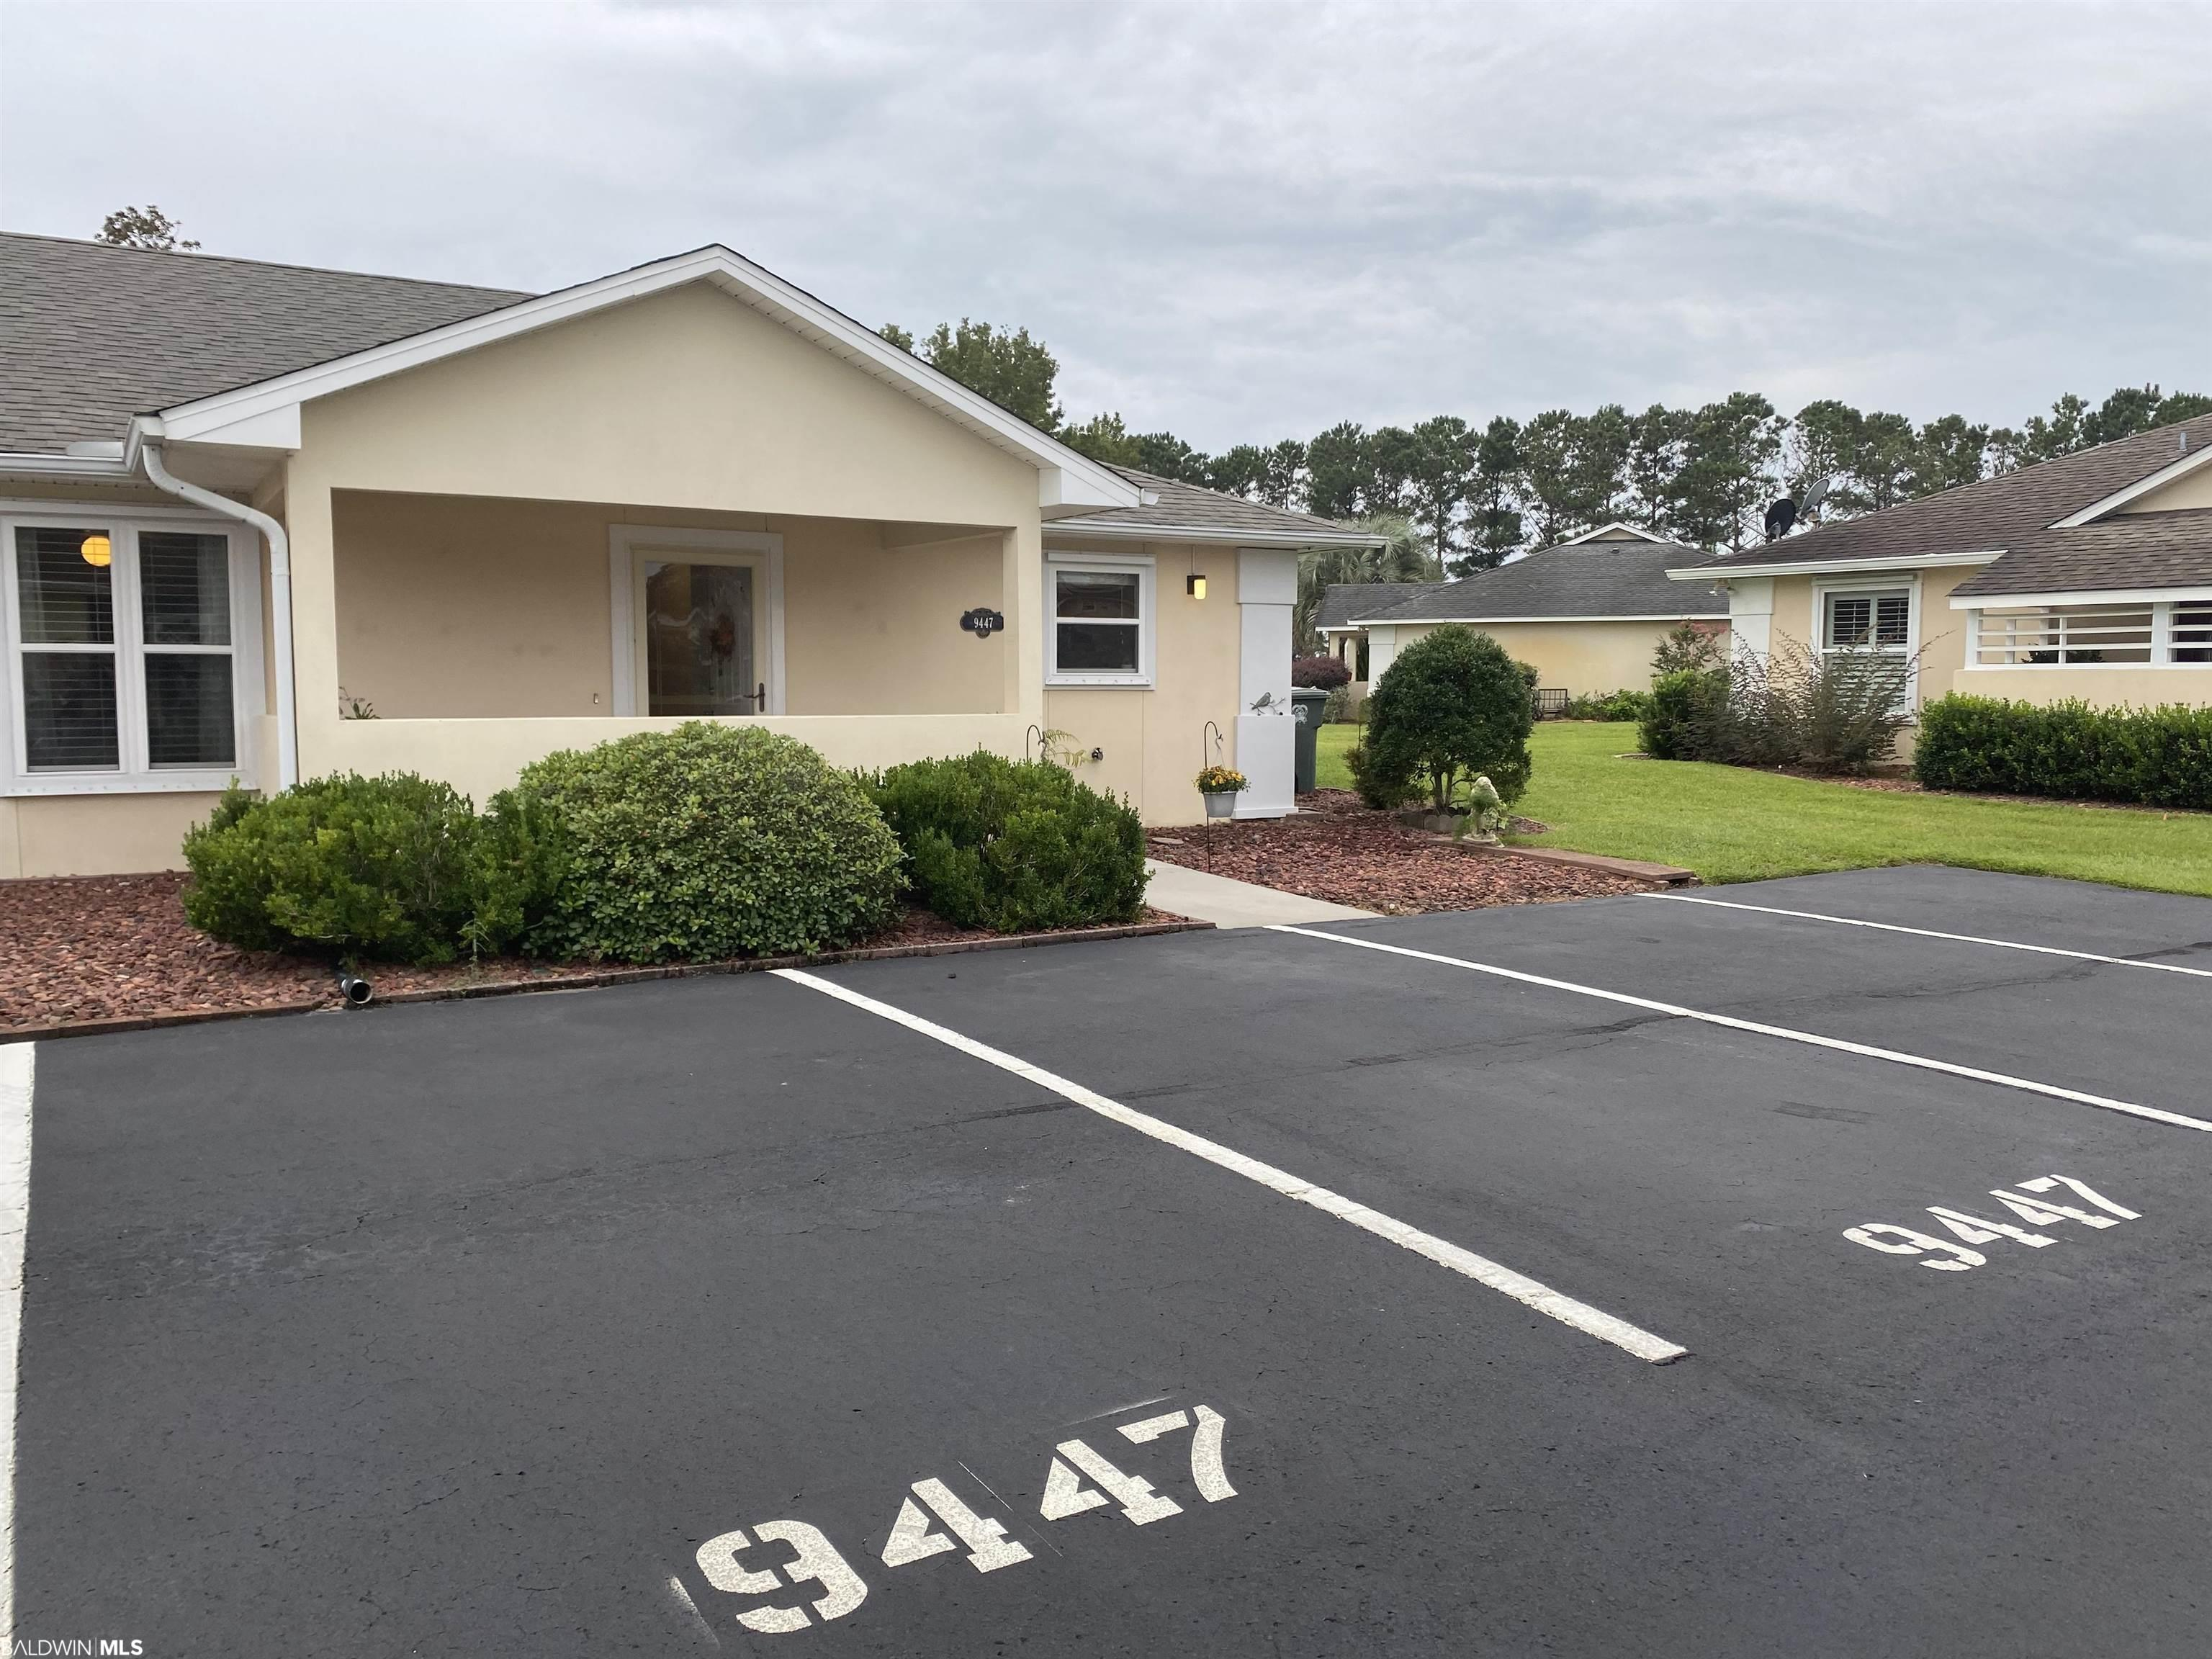 This well maintained large 2 bedroom, 2 bath villa is located in the highly sought after affordable golf community of Lakeview Villas which is located within the Glen Lakes neighborhood. Enjoy this peaceful and quaint community while being in the heart of the action of Baldwin County.  This villa is located within minutes of OWA, dinning, entertainment, shopping at the Tanger Outlets and of course, the beautiful white sands of Orange Beach and Gulf Shores.   This home has the perfect open floor plan, large master bedroom with an en suite master bath and an oversized closet. Ample storage is throughout the villa. Enjoy sitting in the heated and cooled sunroom while overlooking the well maintained landscaping.  In addition, the entire interior of the villa has been freshly painted and you will have peace of mind knowing that the villa has a new roof.